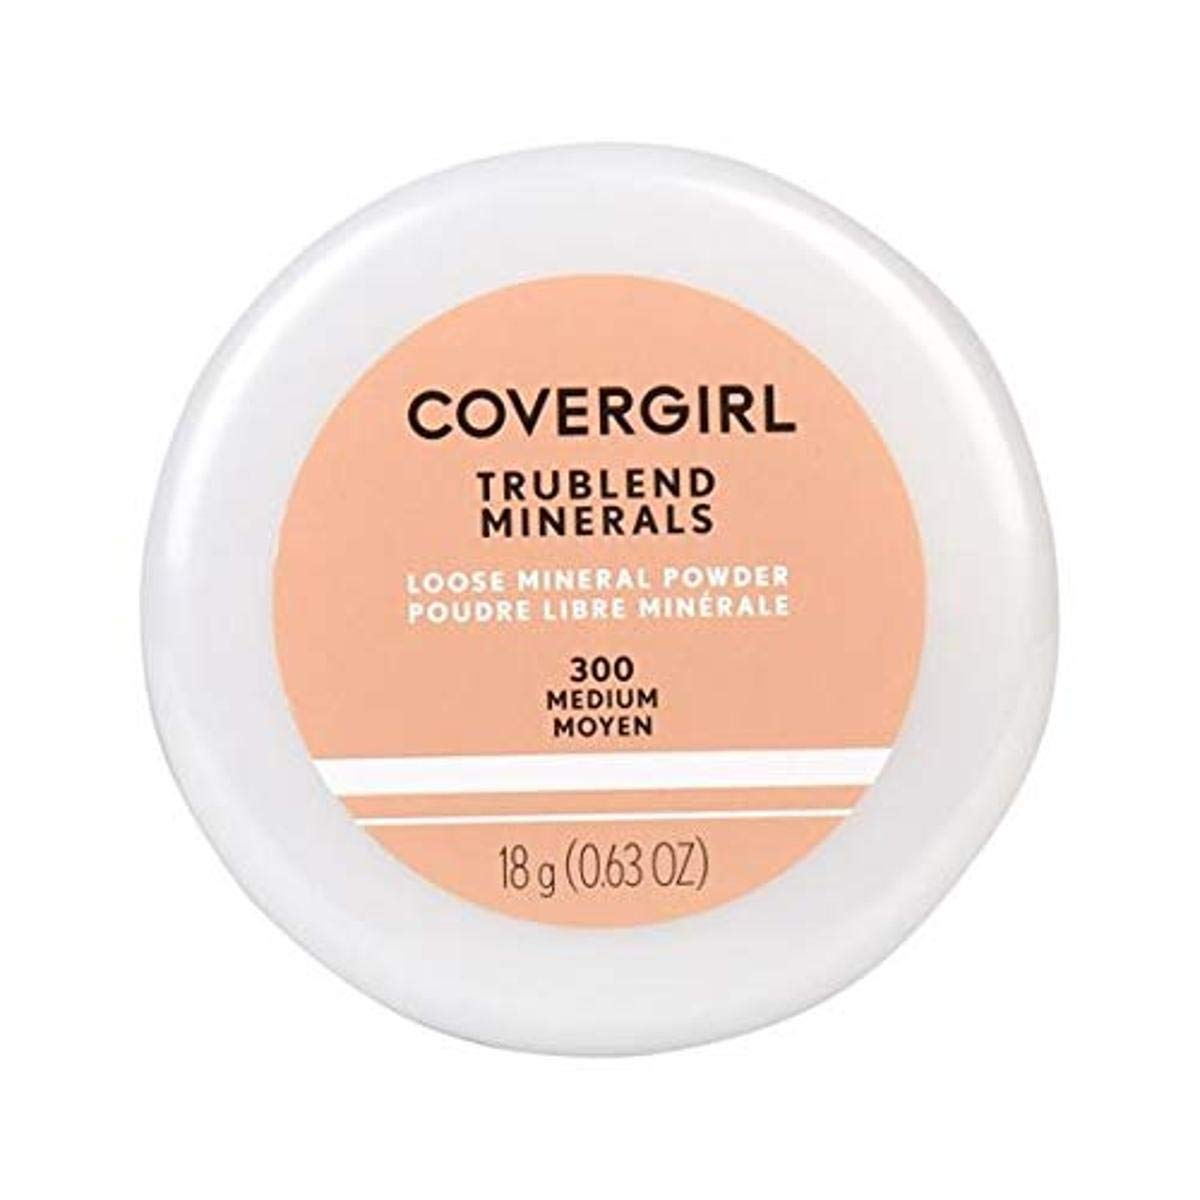 Max 67% OFF Our shop OFFers the best service COVERGIRL truBLEND Mineral Powder Loose